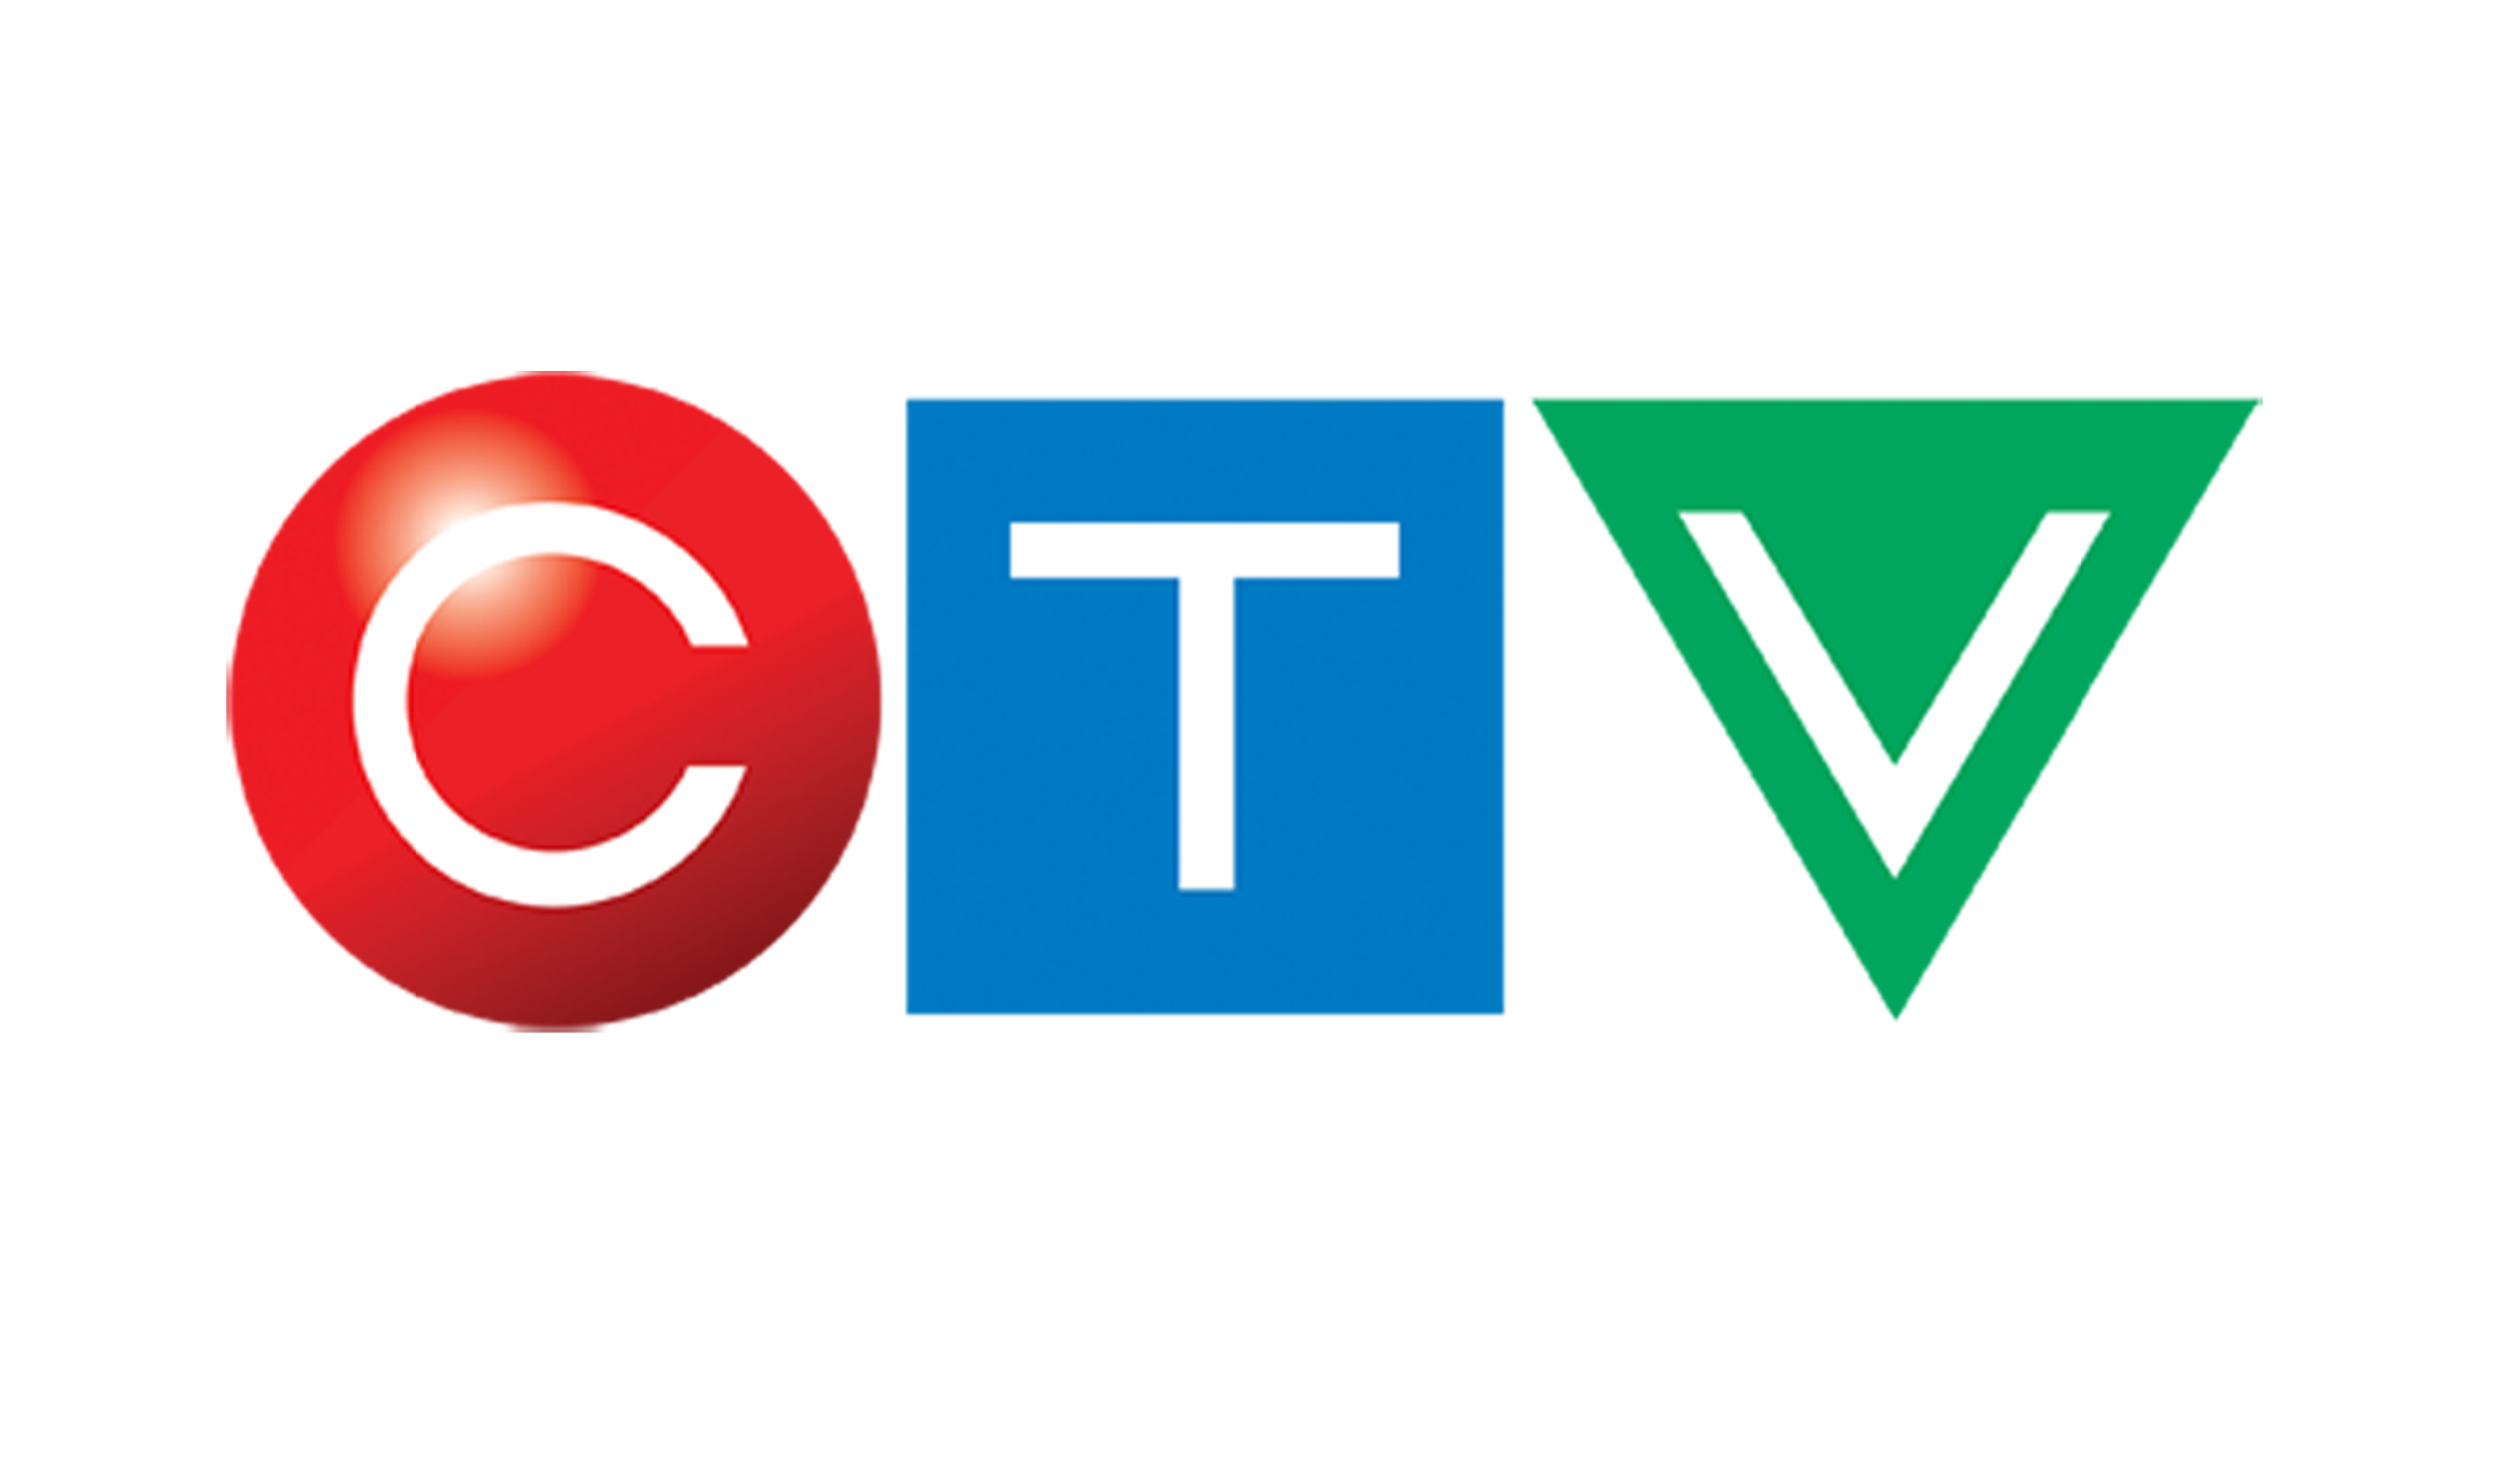 kisspng-ottawa-ctv-news-ctv-vancouver-ctv-television-netwo-international-coach-federation-5b1987769e67b8.1774327915283997346488.png